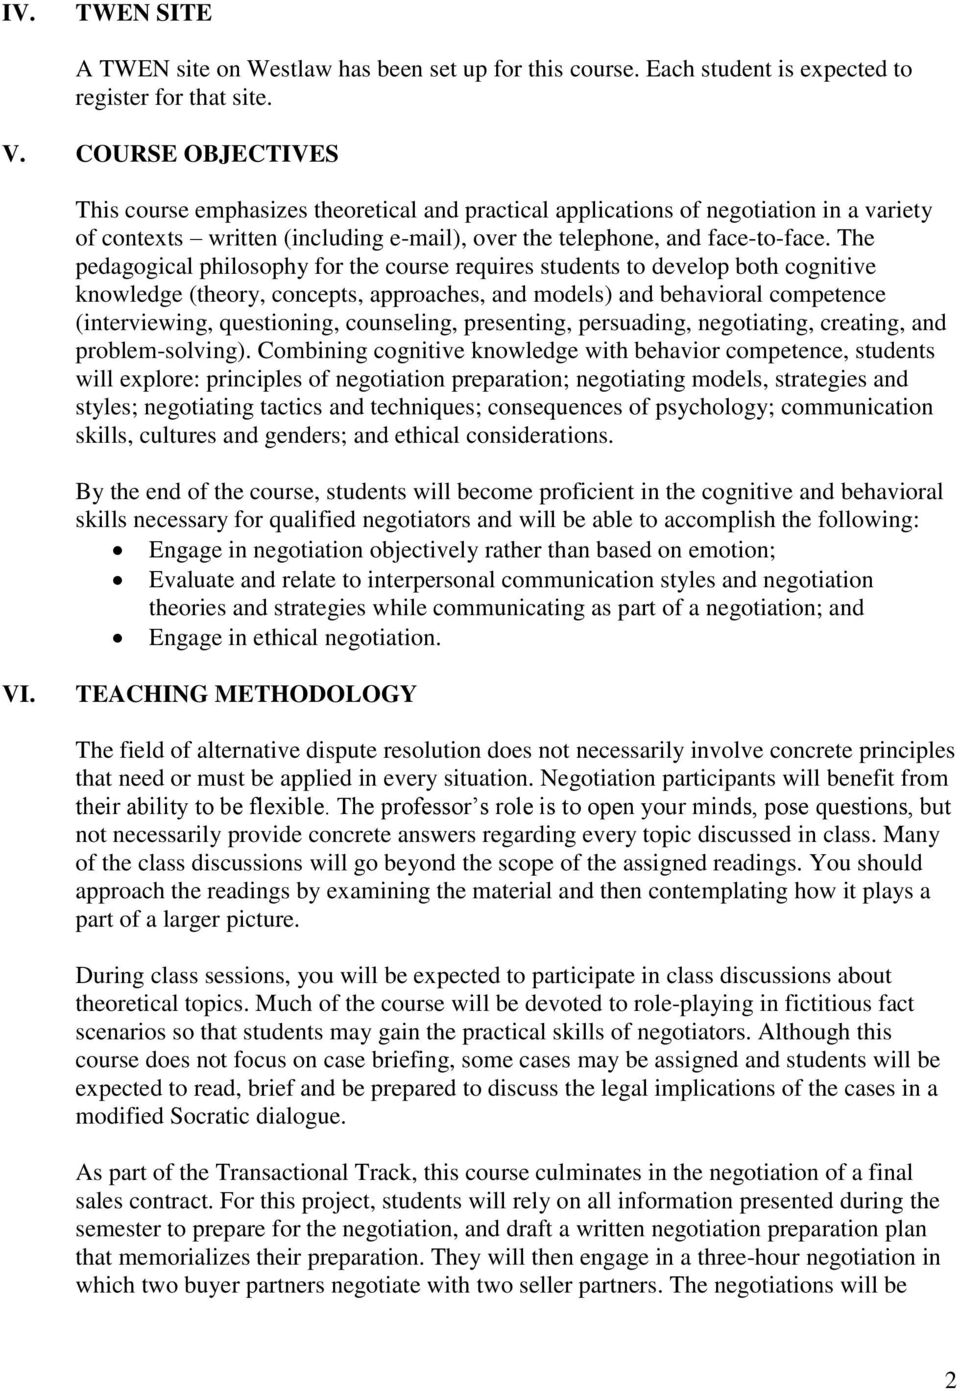 The pedagogical philosophy for the course requires students to develop both cognitive knowledge (theory, concepts, approaches, and models) and behavioral competence (interviewing, questioning,